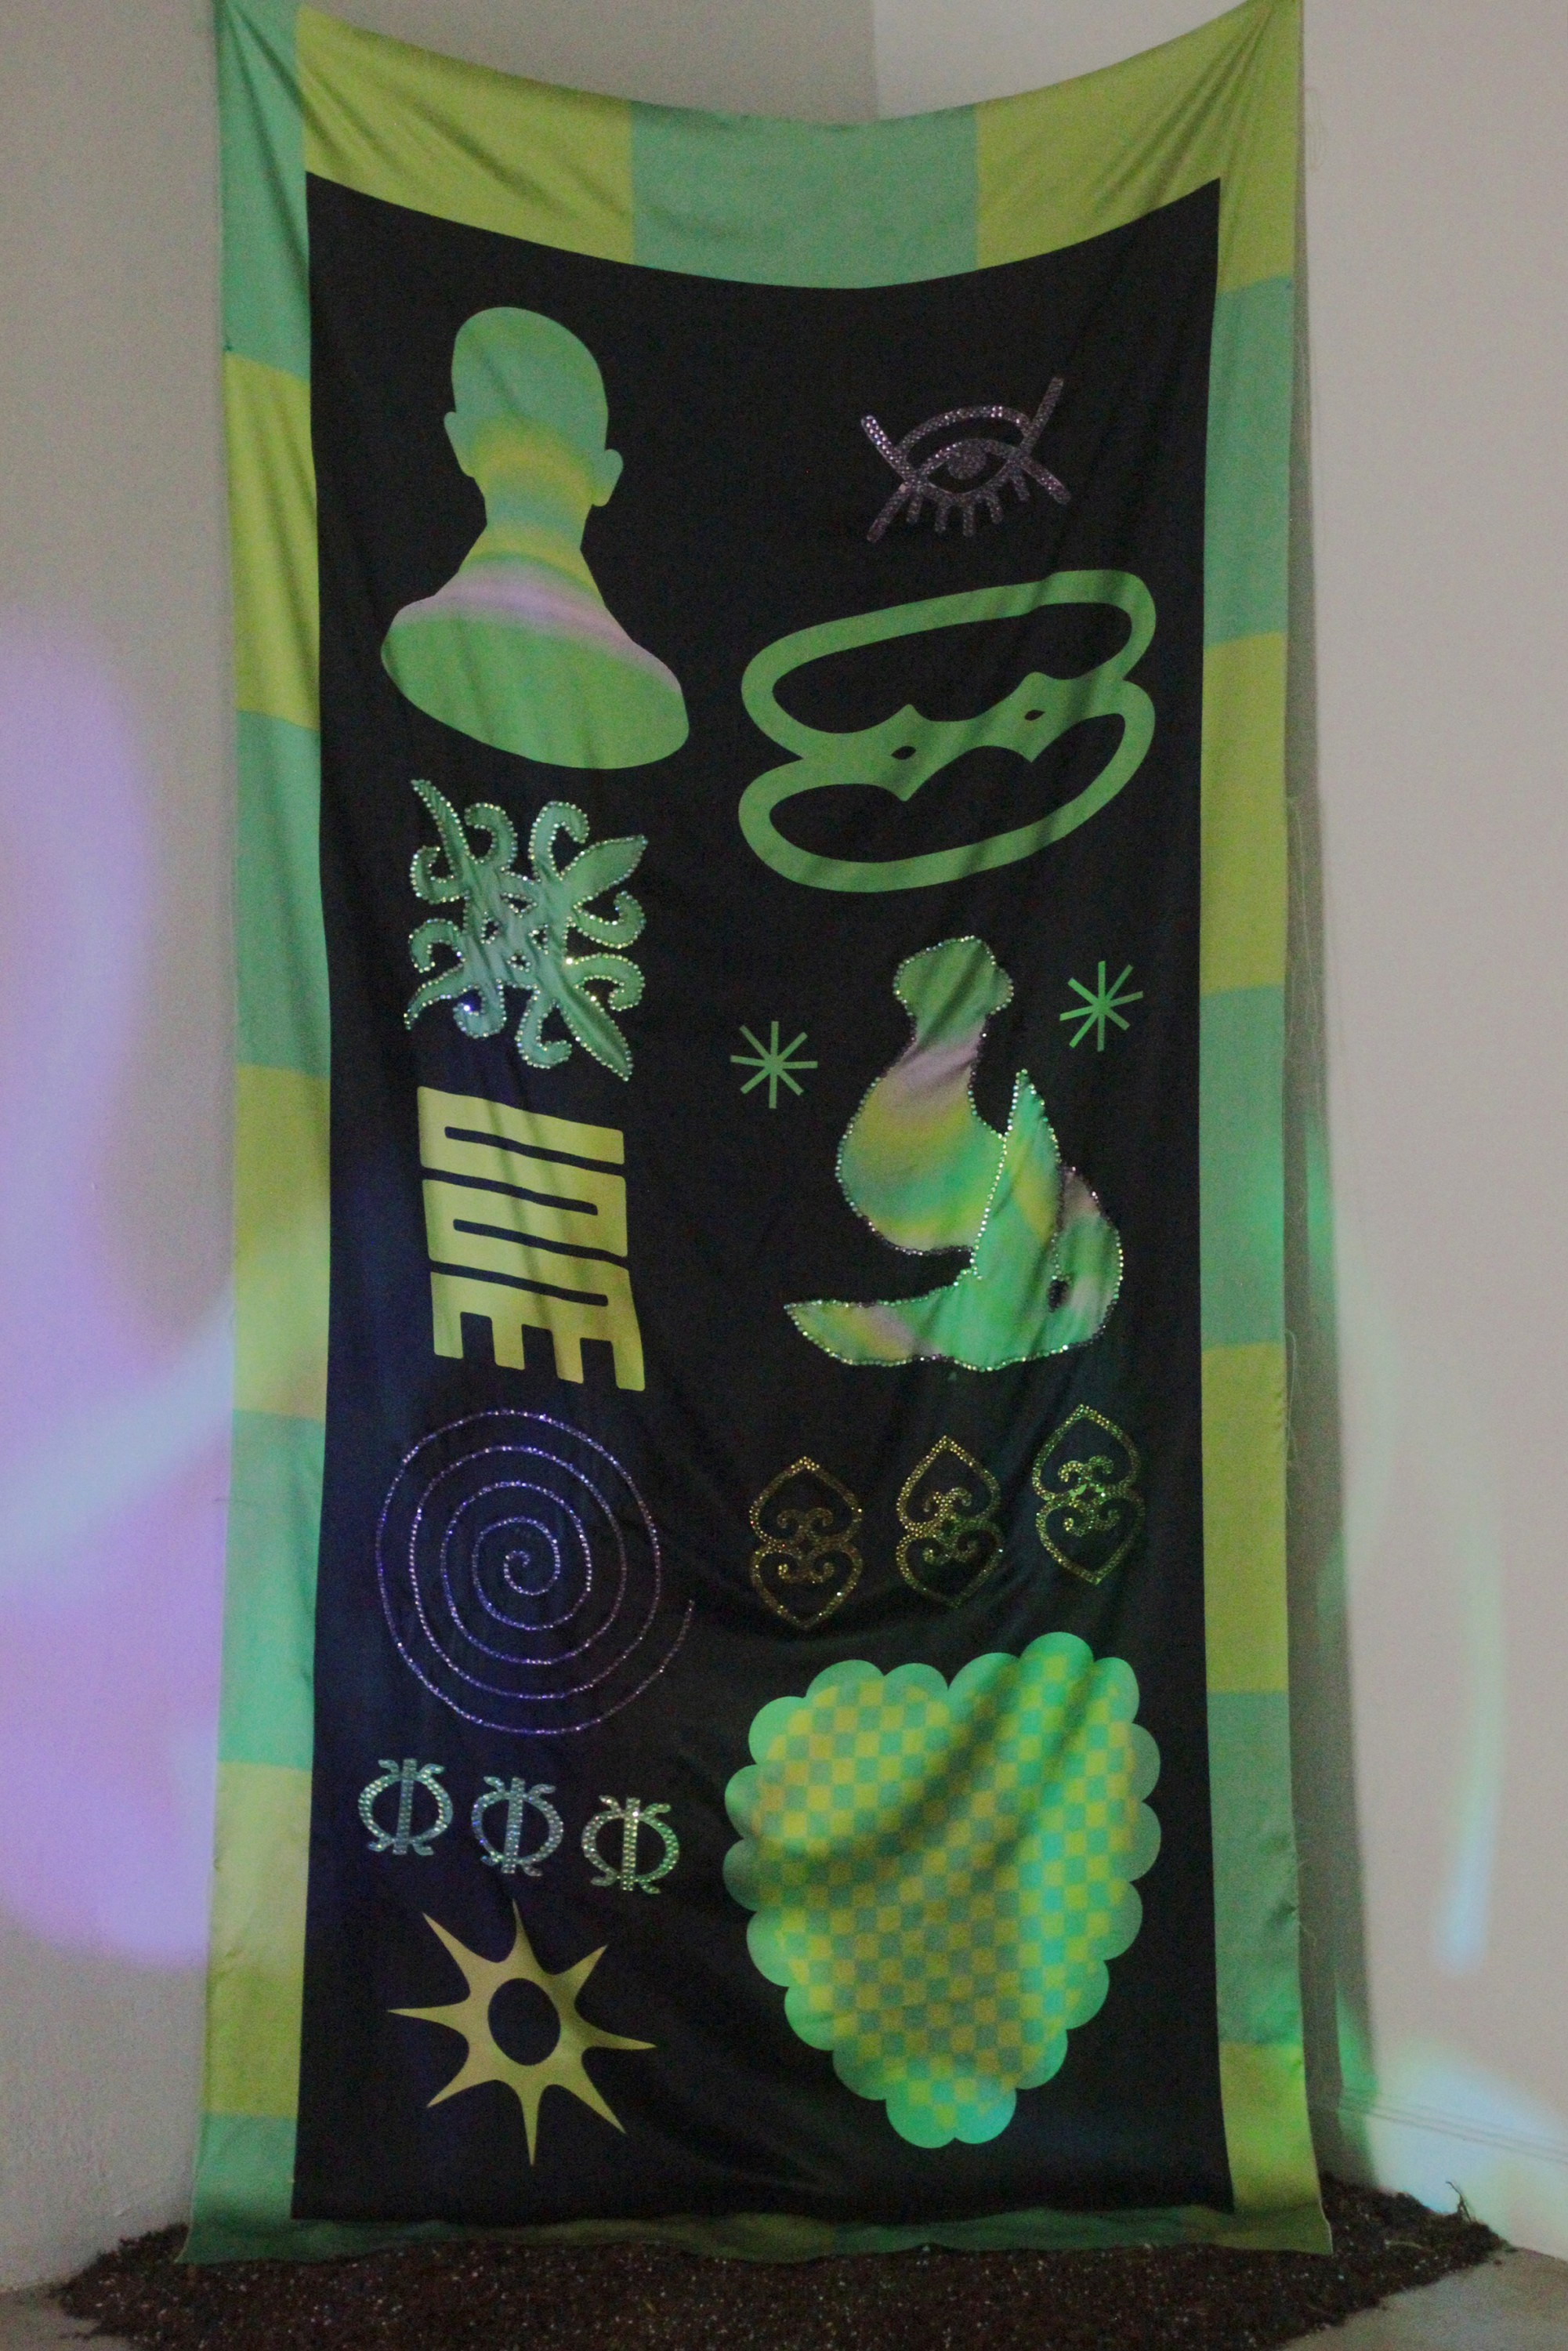 A 7.5 x 4 foot silk cloth with symbols digitally printed hangs in the corner of the gallery. underneath there is a circular pile of soil. The cloth is enclosed in a two-tone border in the style of Asafo flags in lime-green-yellow and seafoam-green-blue. T